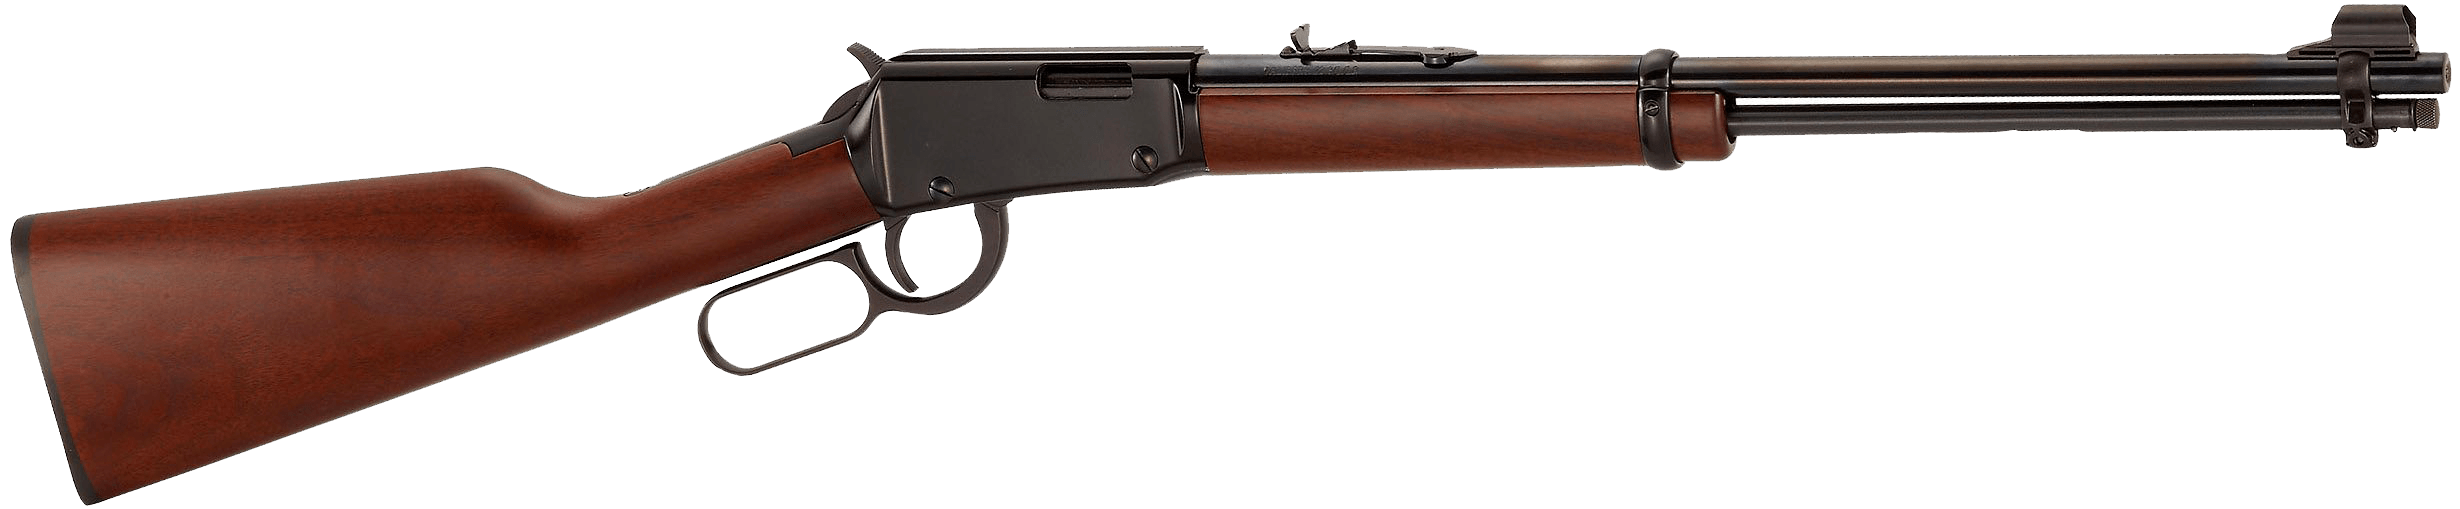 henry lever action 22 rifle